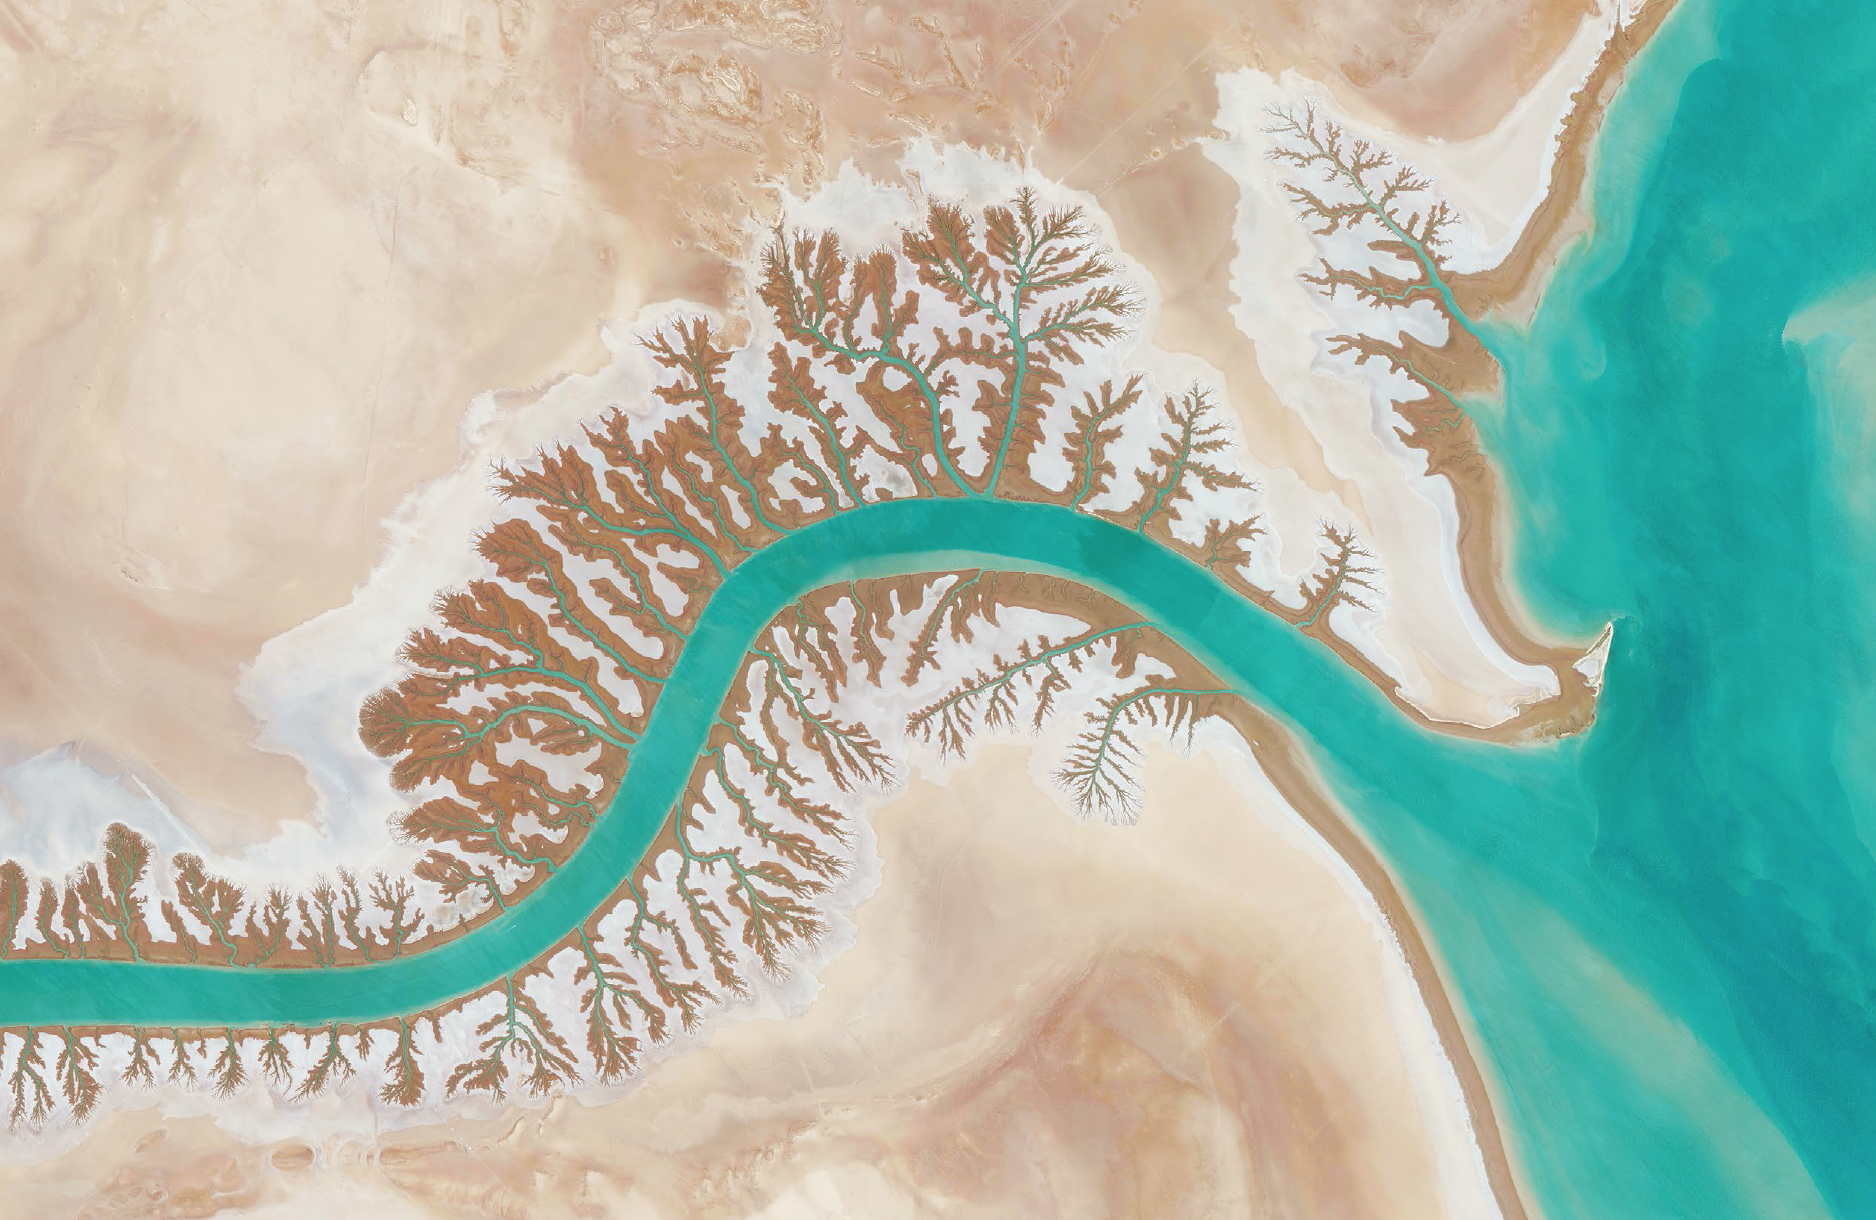 3/9/2016  Dendritic drainage systems  Shadegan Lagoon, Iran  30.327274, 48.829255    A dendritic drainage pattern is seen around the Shadegan Lagoon by Musa Bay in Iran.Dendritic literally means branched, as in resembling the pattern of a tree. This shape develops when streams move across relatively flat and uniform rock or over a surface that resists erosion.